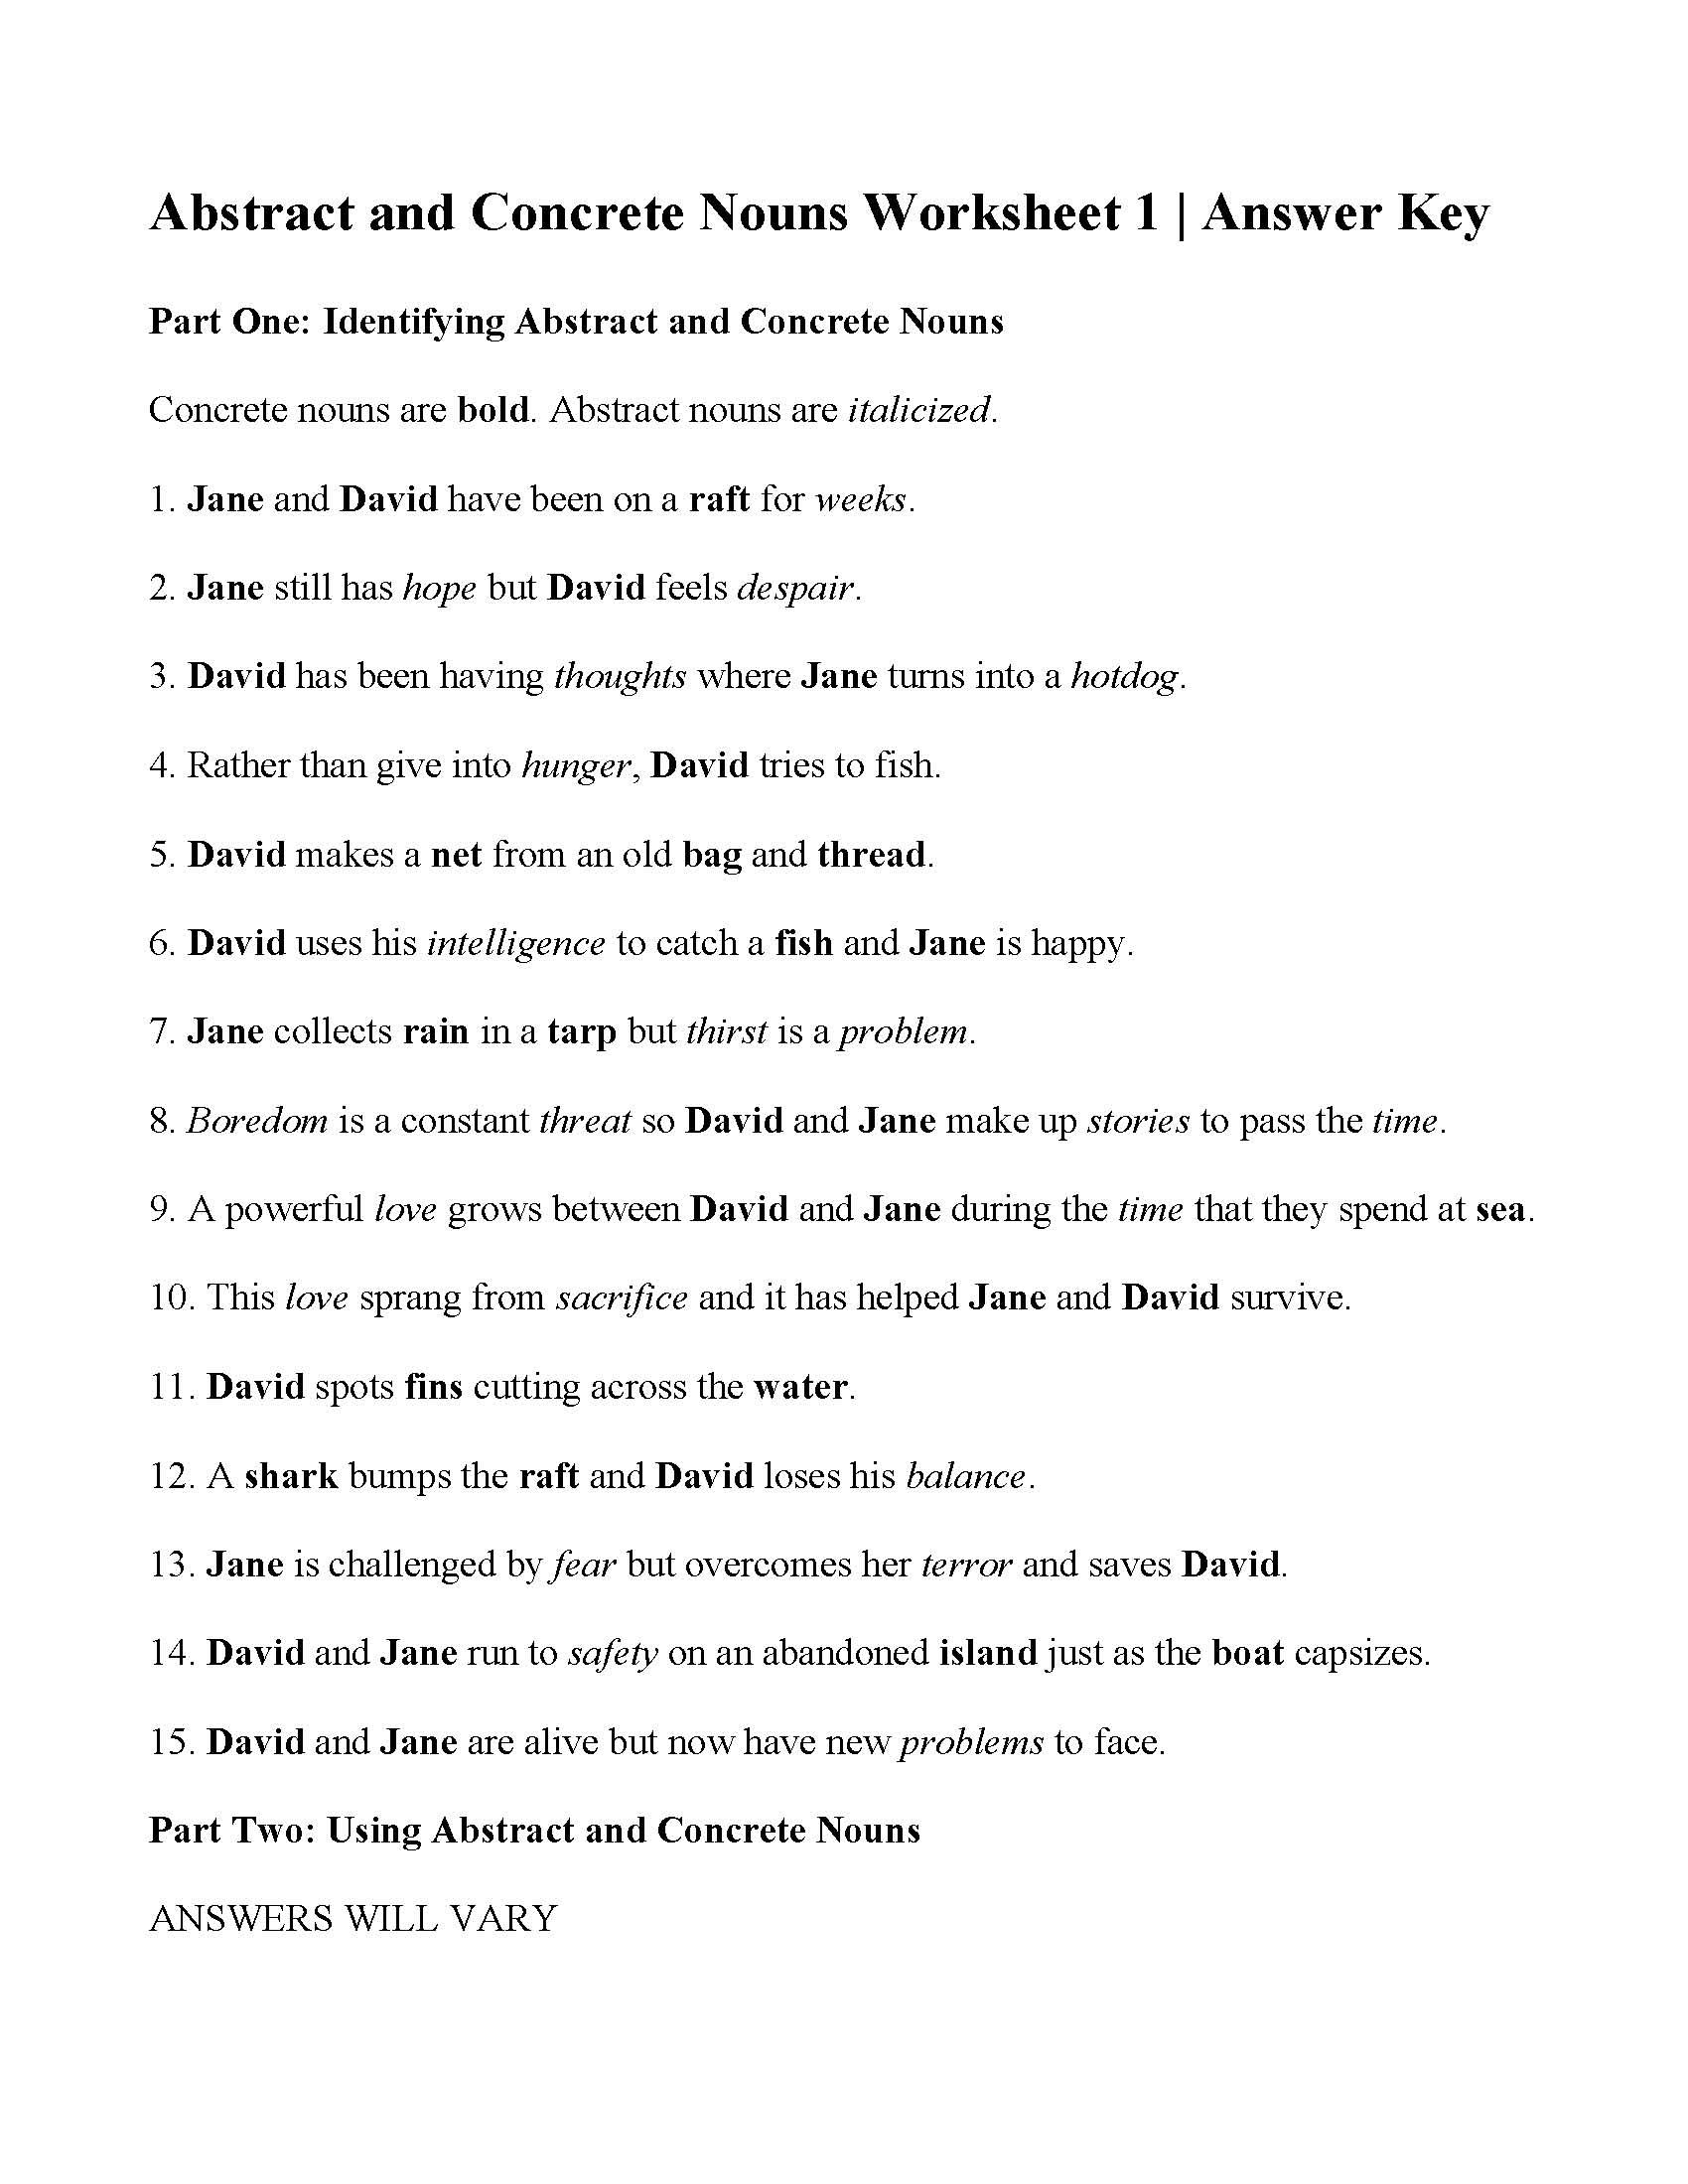 Concrete And Abstract Nouns Worksheet